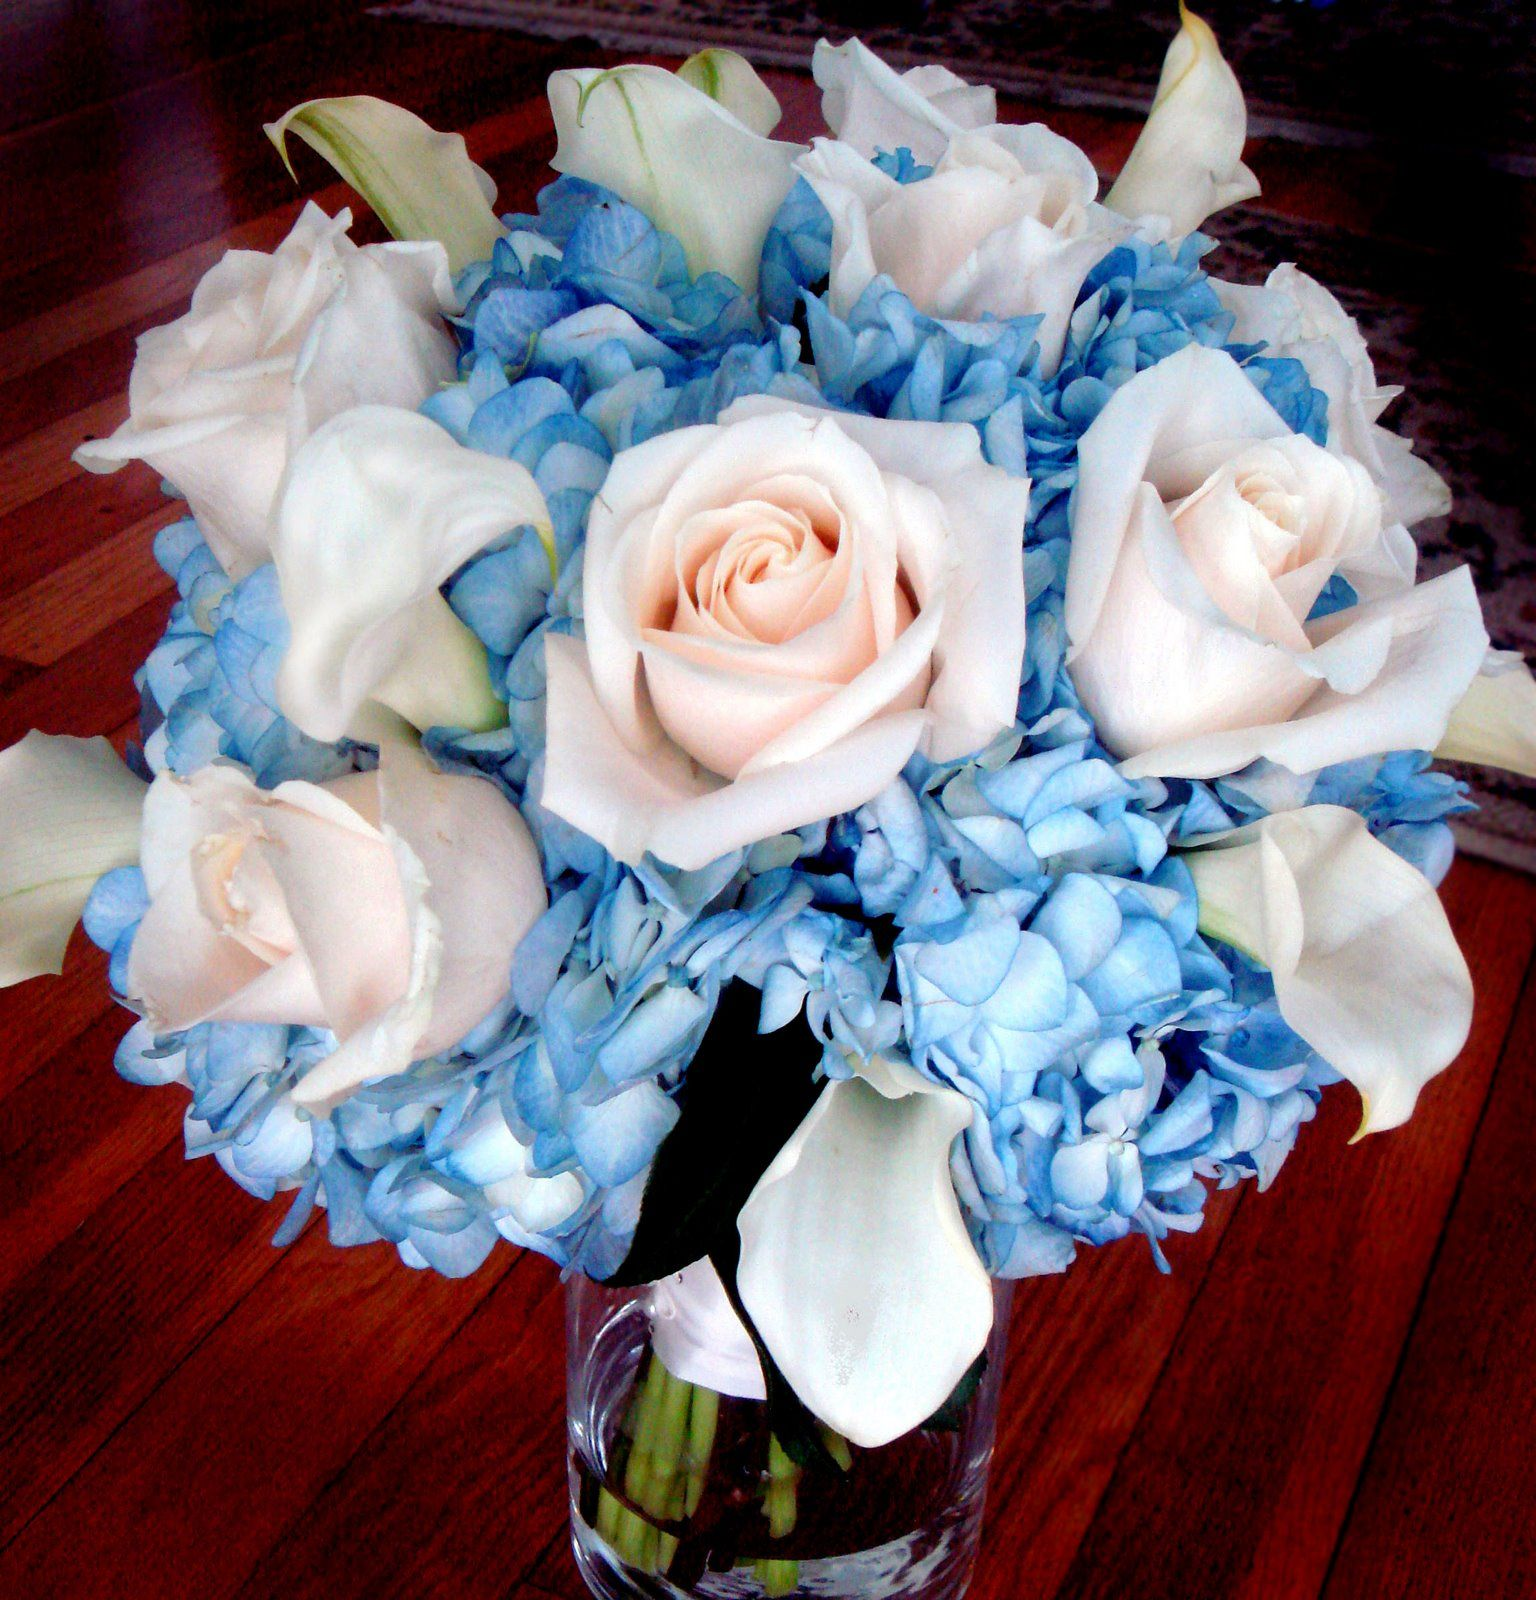 Nature offers us a wide variety of blossoms and colors of the blue and white wedding flowers maybe just white roses instead of pale pink to keep it sharp dhlflorist Image collections